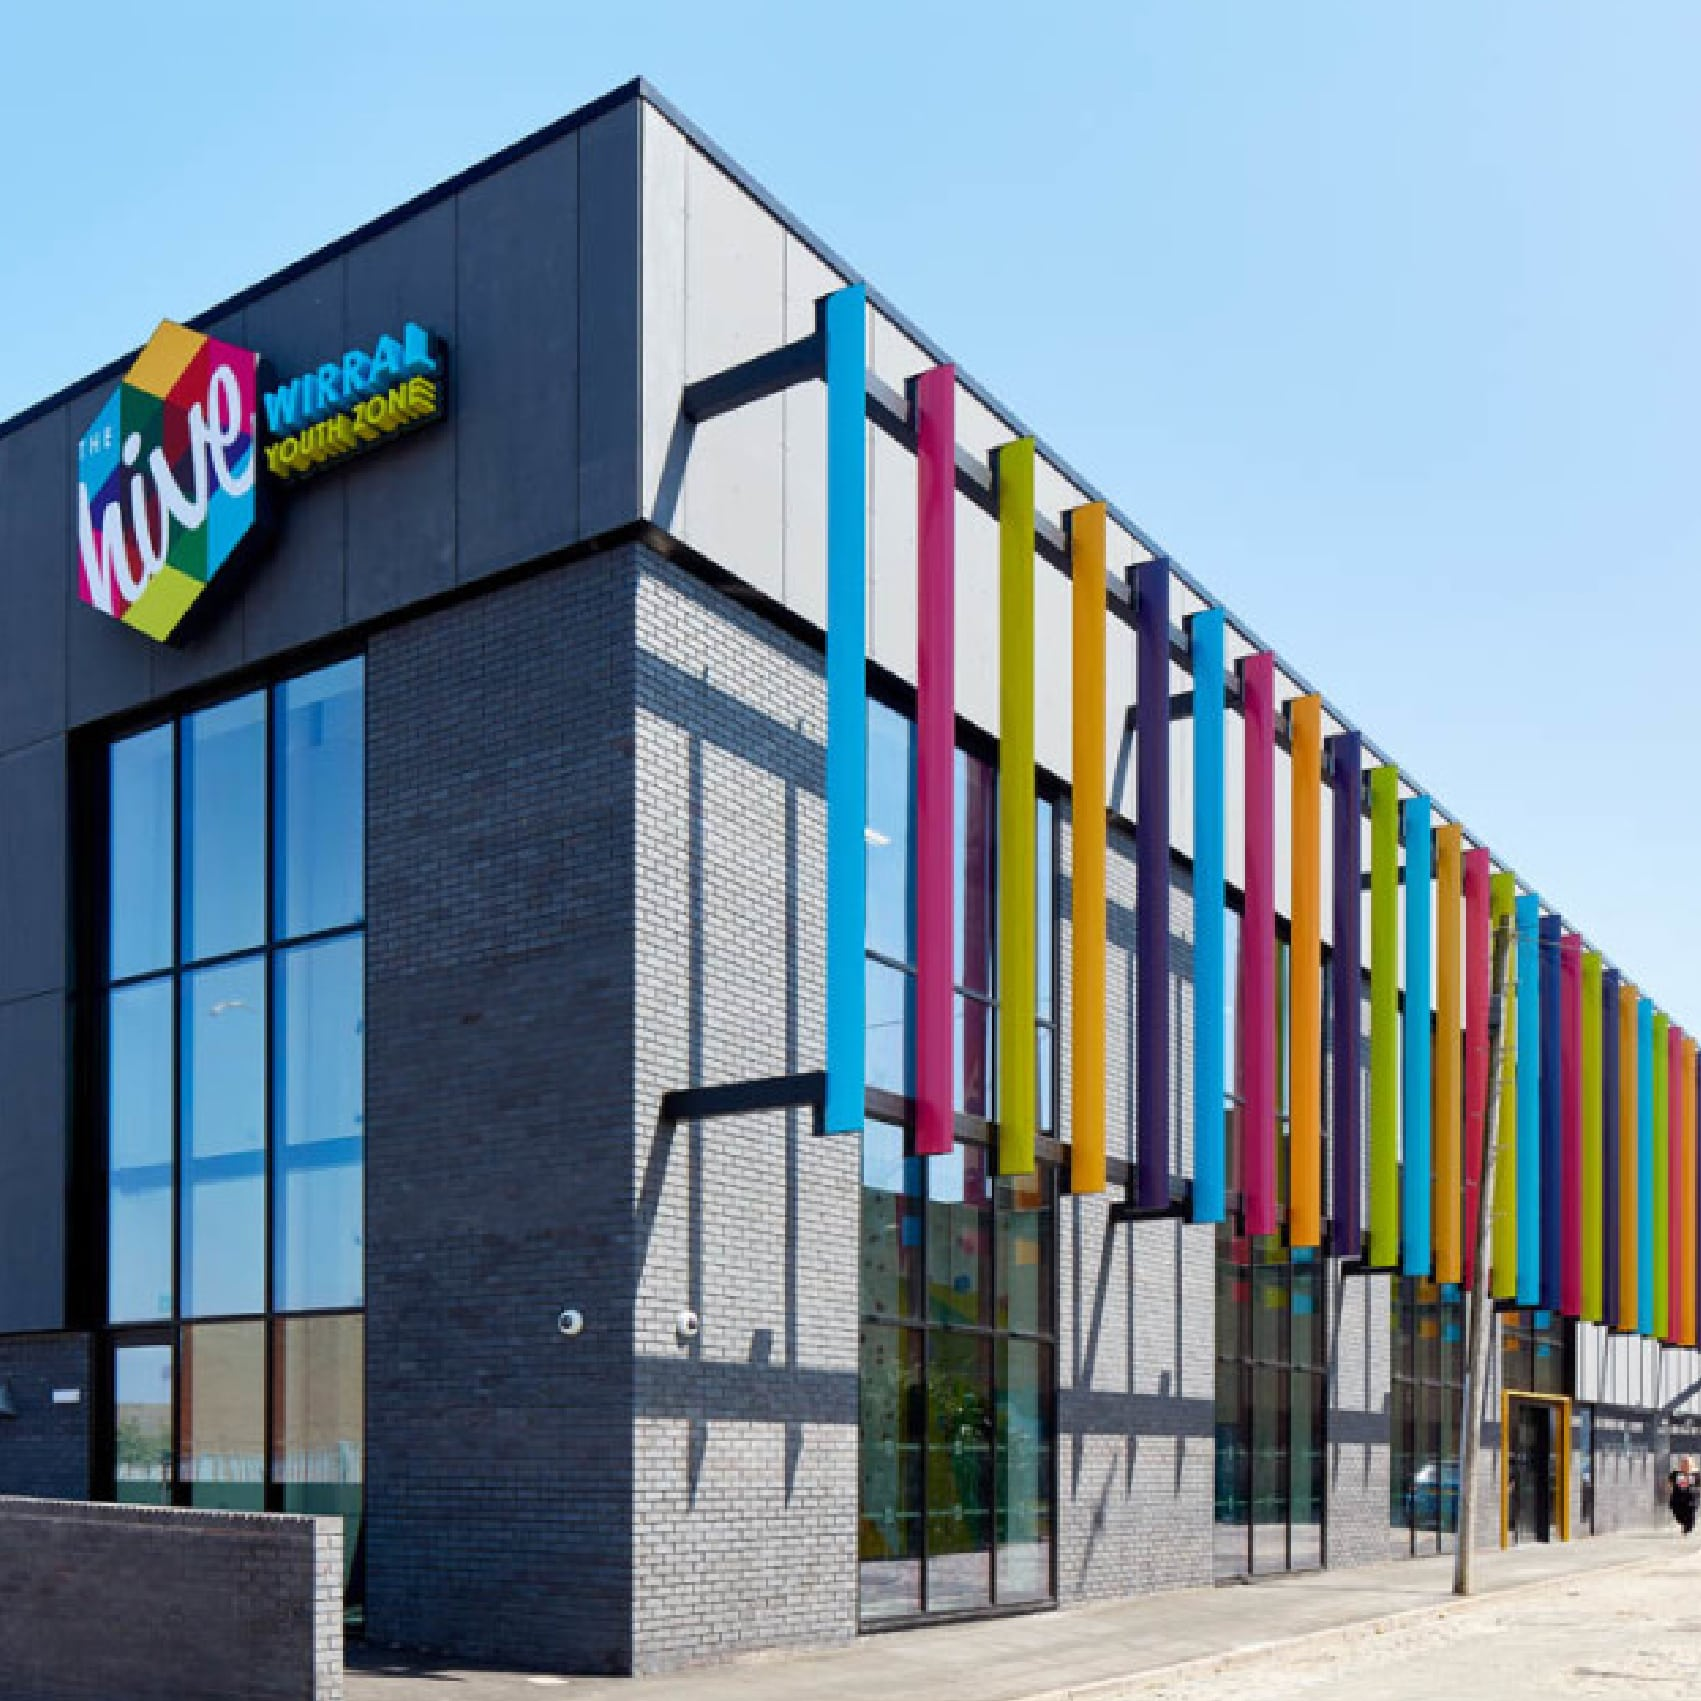 Wirral Youth Zone wins Best Public Service Building Award